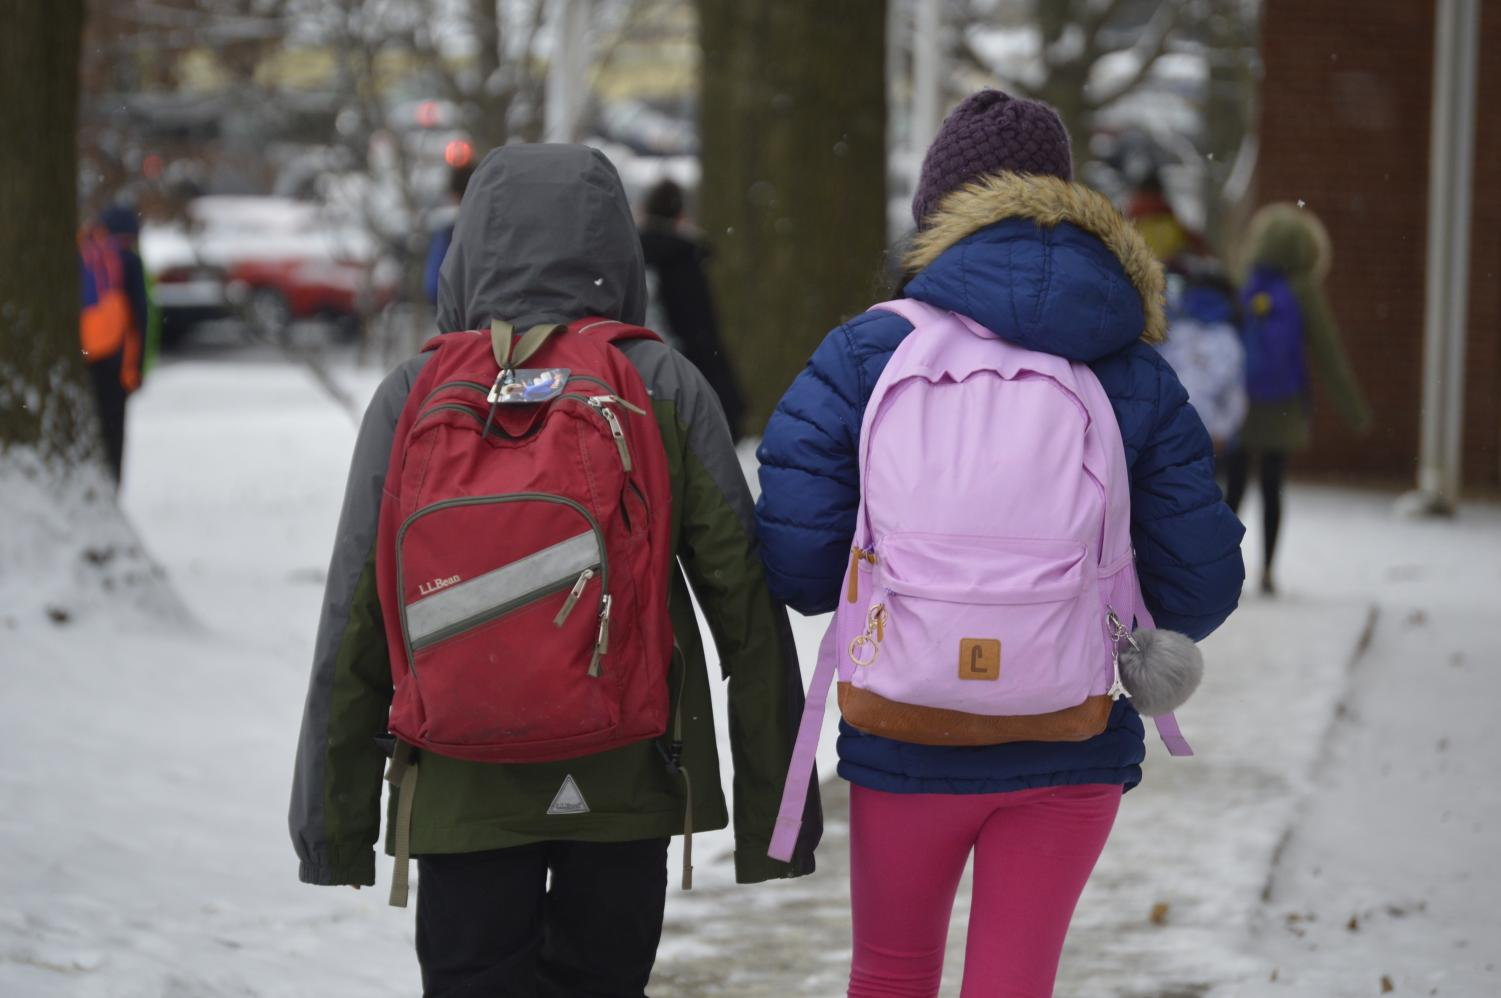 Two students walk home from school in the snow today, Friday, February 1. Many people were upset that school was not cancelled today. However, many students actually chose to walk home rather than take the bus.